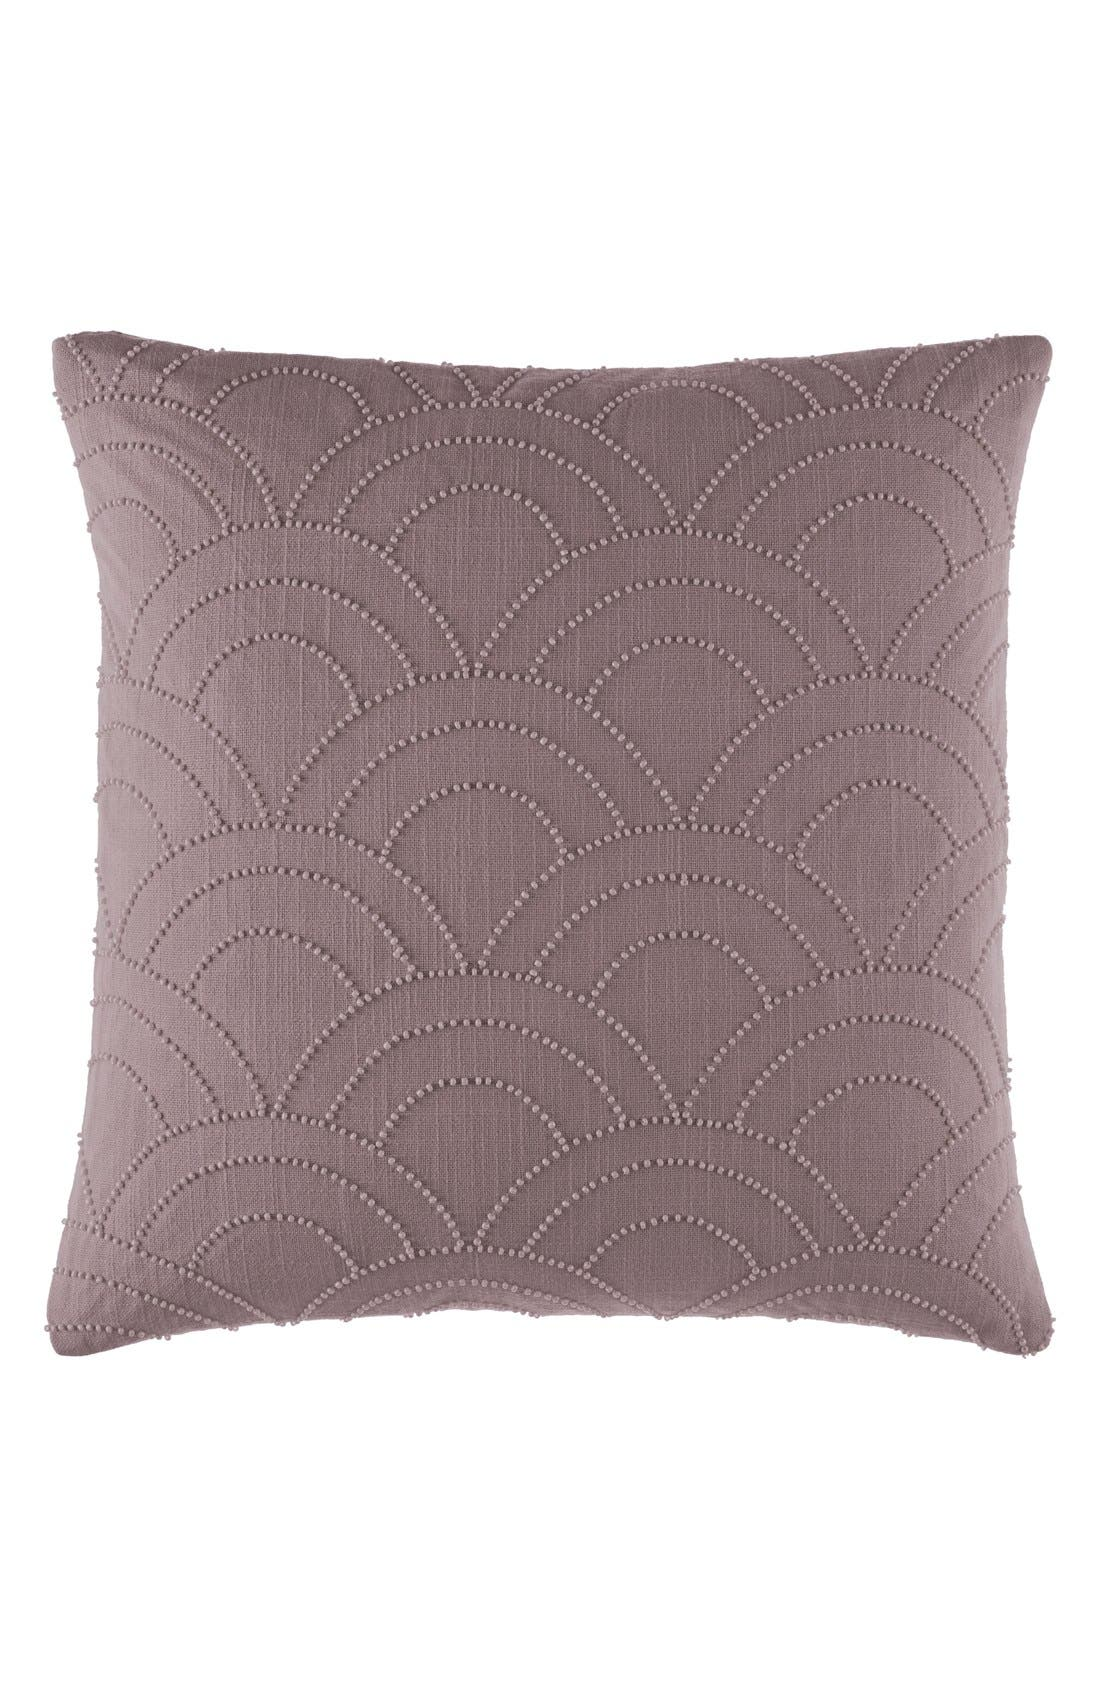 'Metro Adrian' Beaded Pillow,                             Main thumbnail 1, color,                             Plum